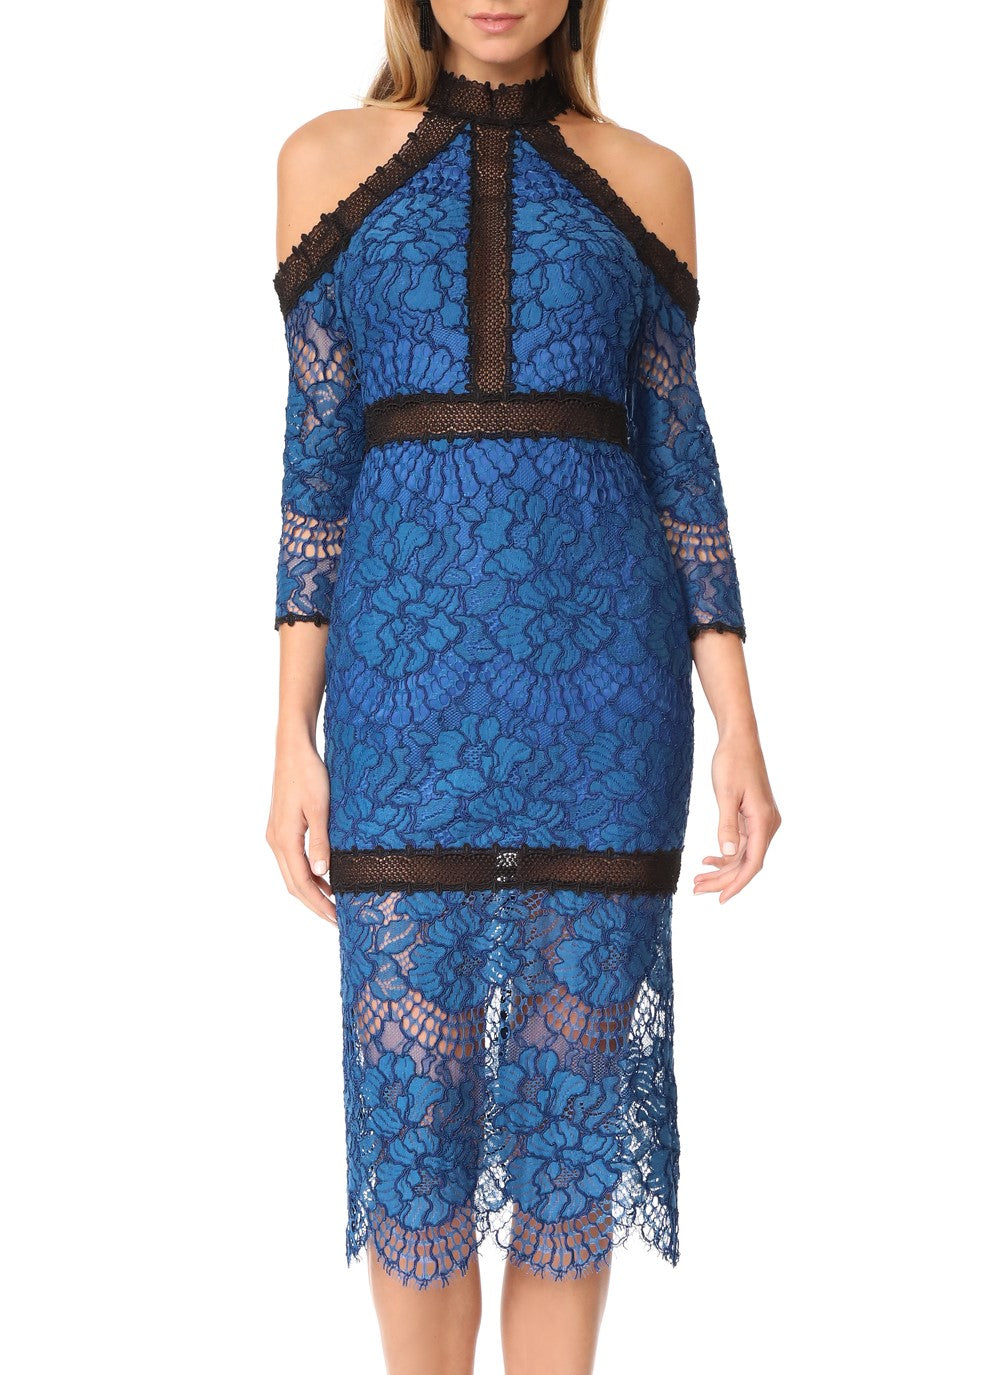 Alexis marlowe dress blue